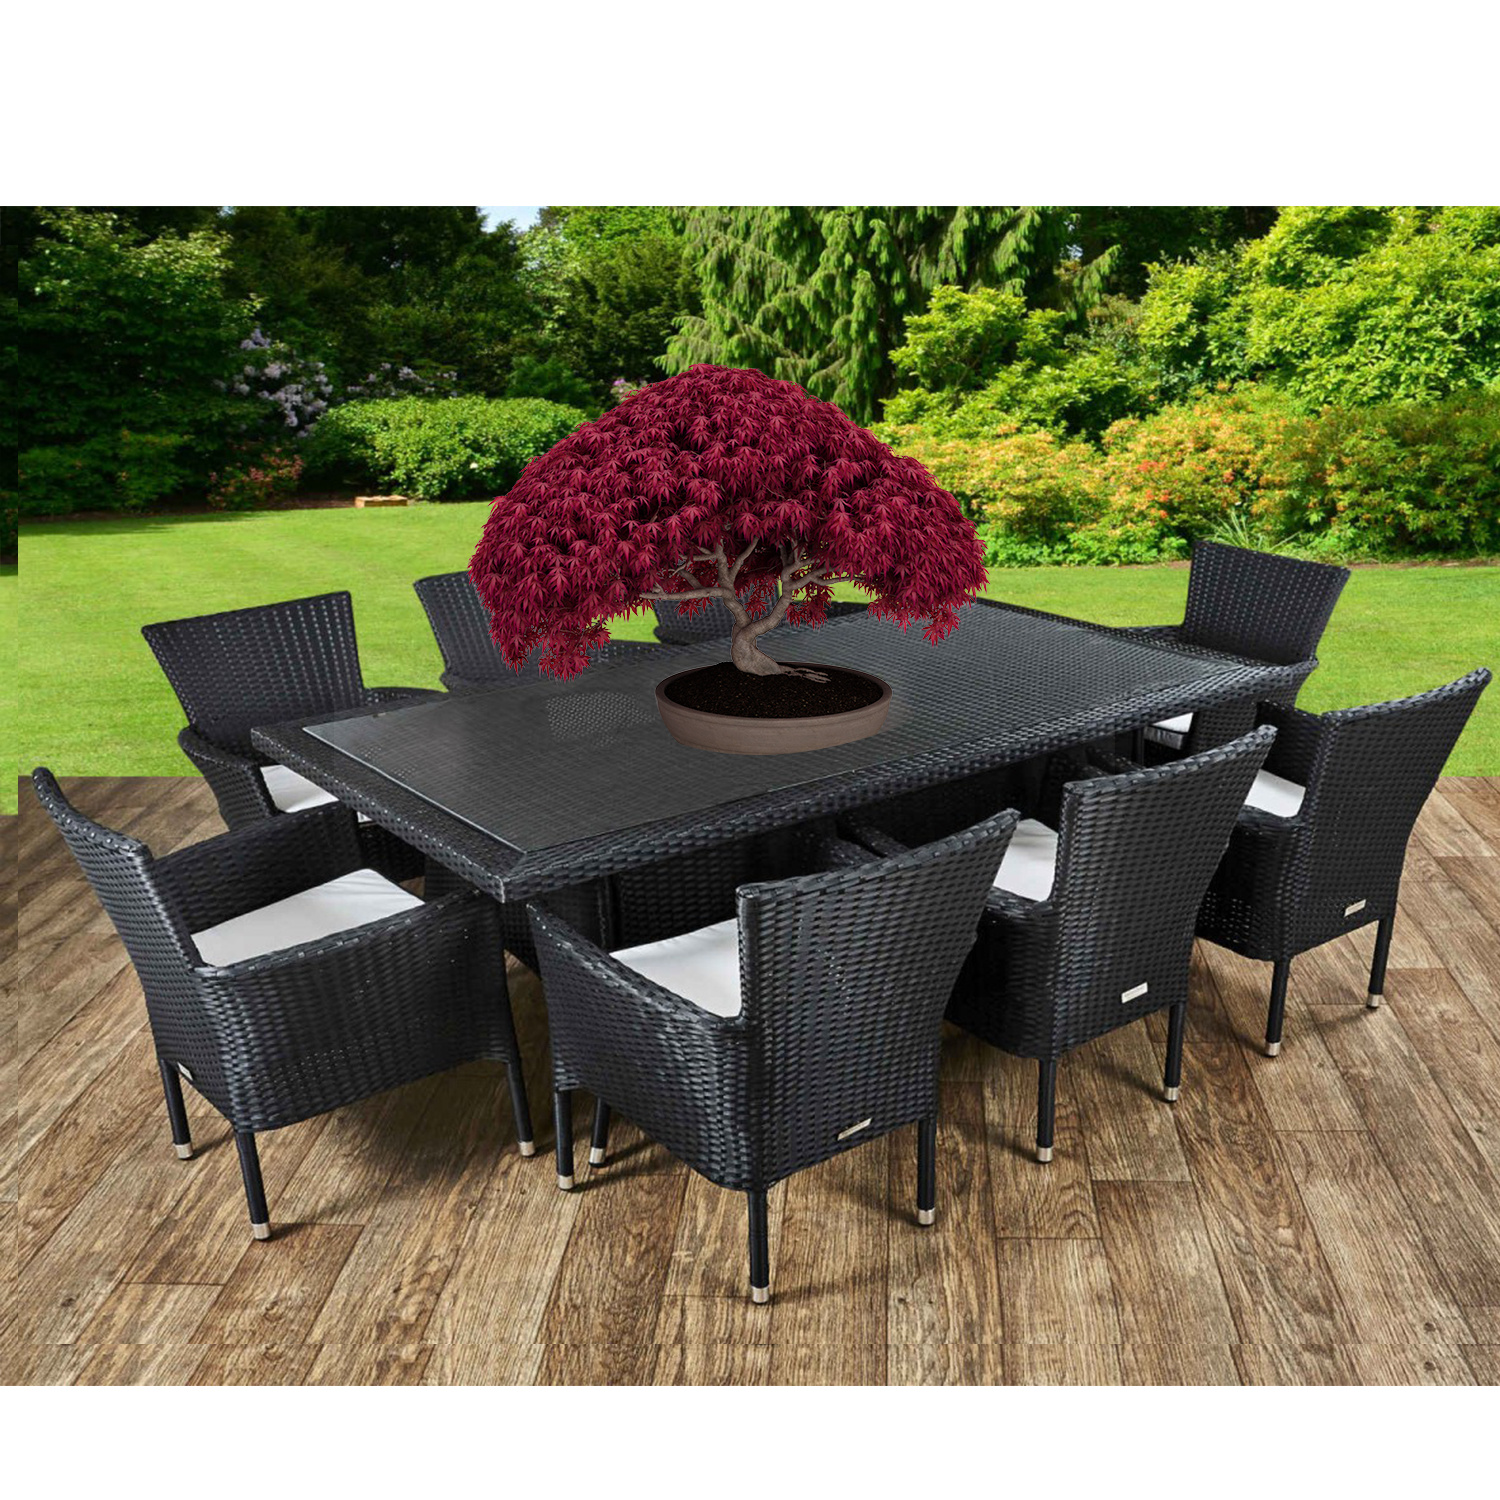 6 8 seater Oval Rectangular Furniture Patio Garden Table Chairs Set Cov